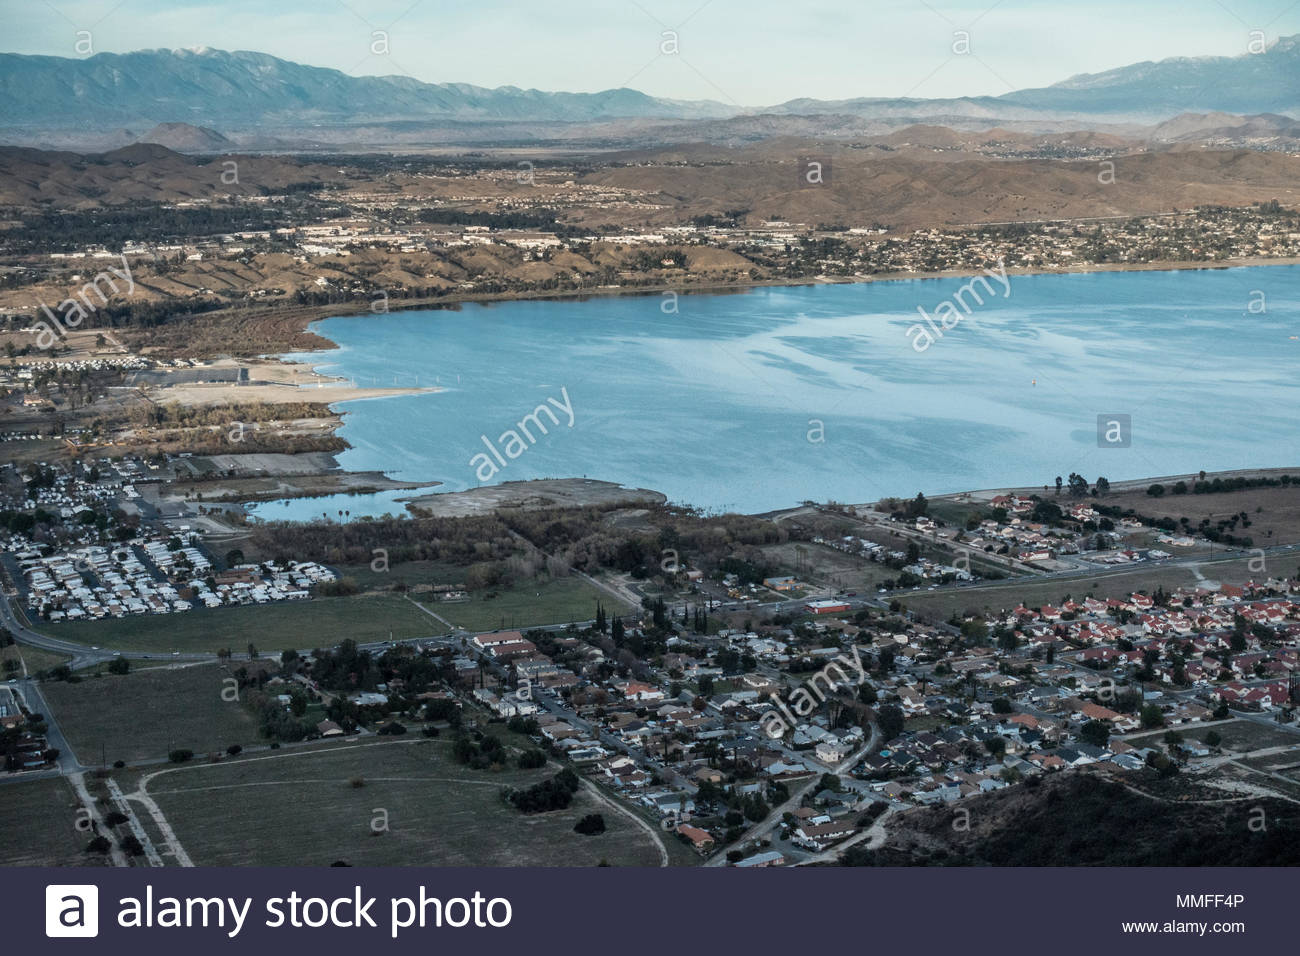 The lake and the town of Lake Elsinore. - Stock Image